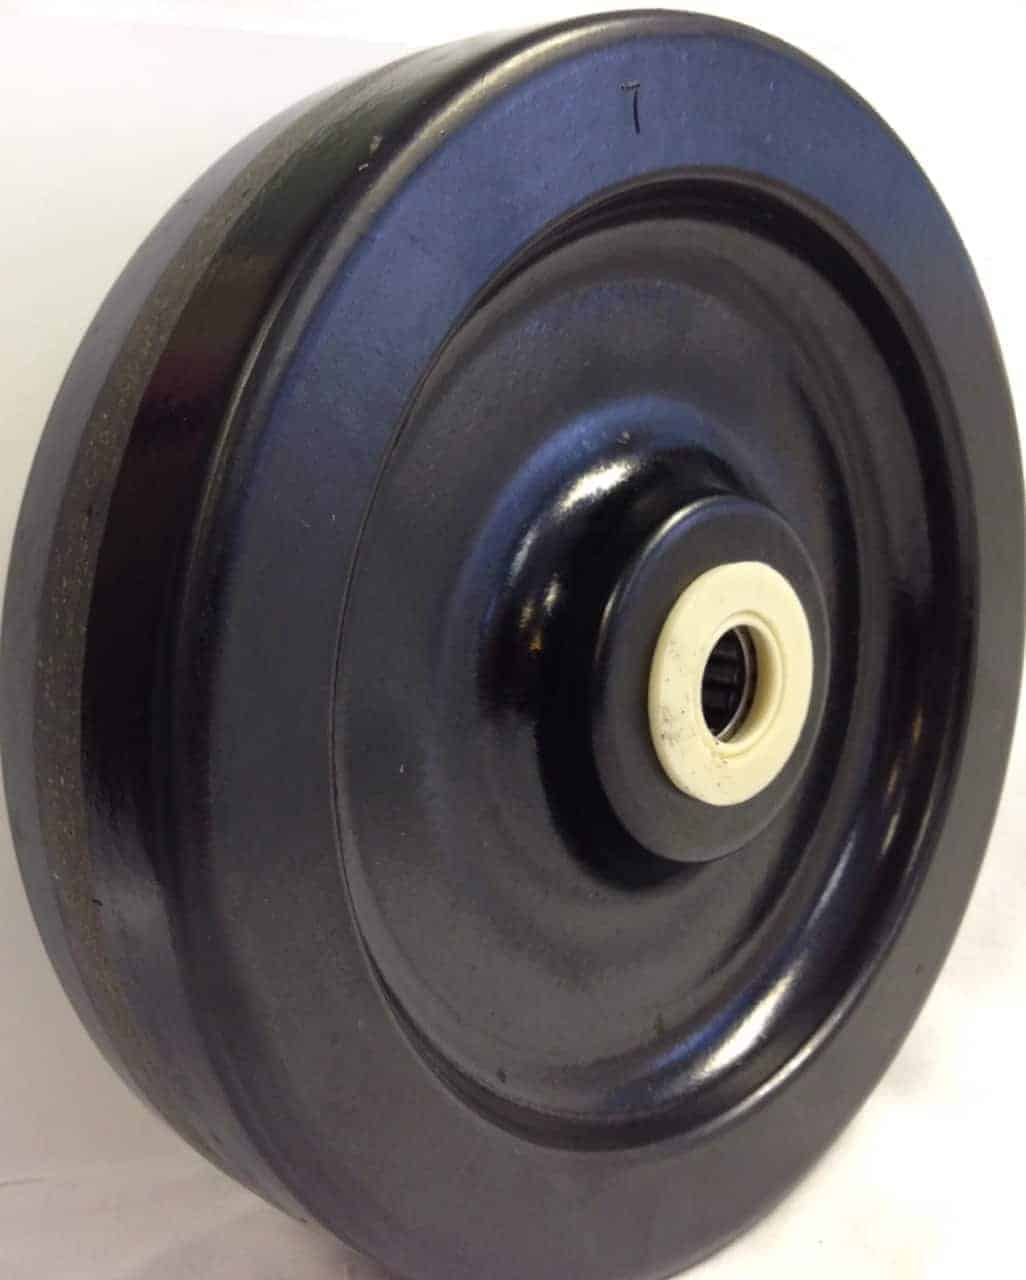 6″ Phenolic Wheel With 3-1/4″ Hub 1″ Roller Bearing 2000 Lbs Capacity